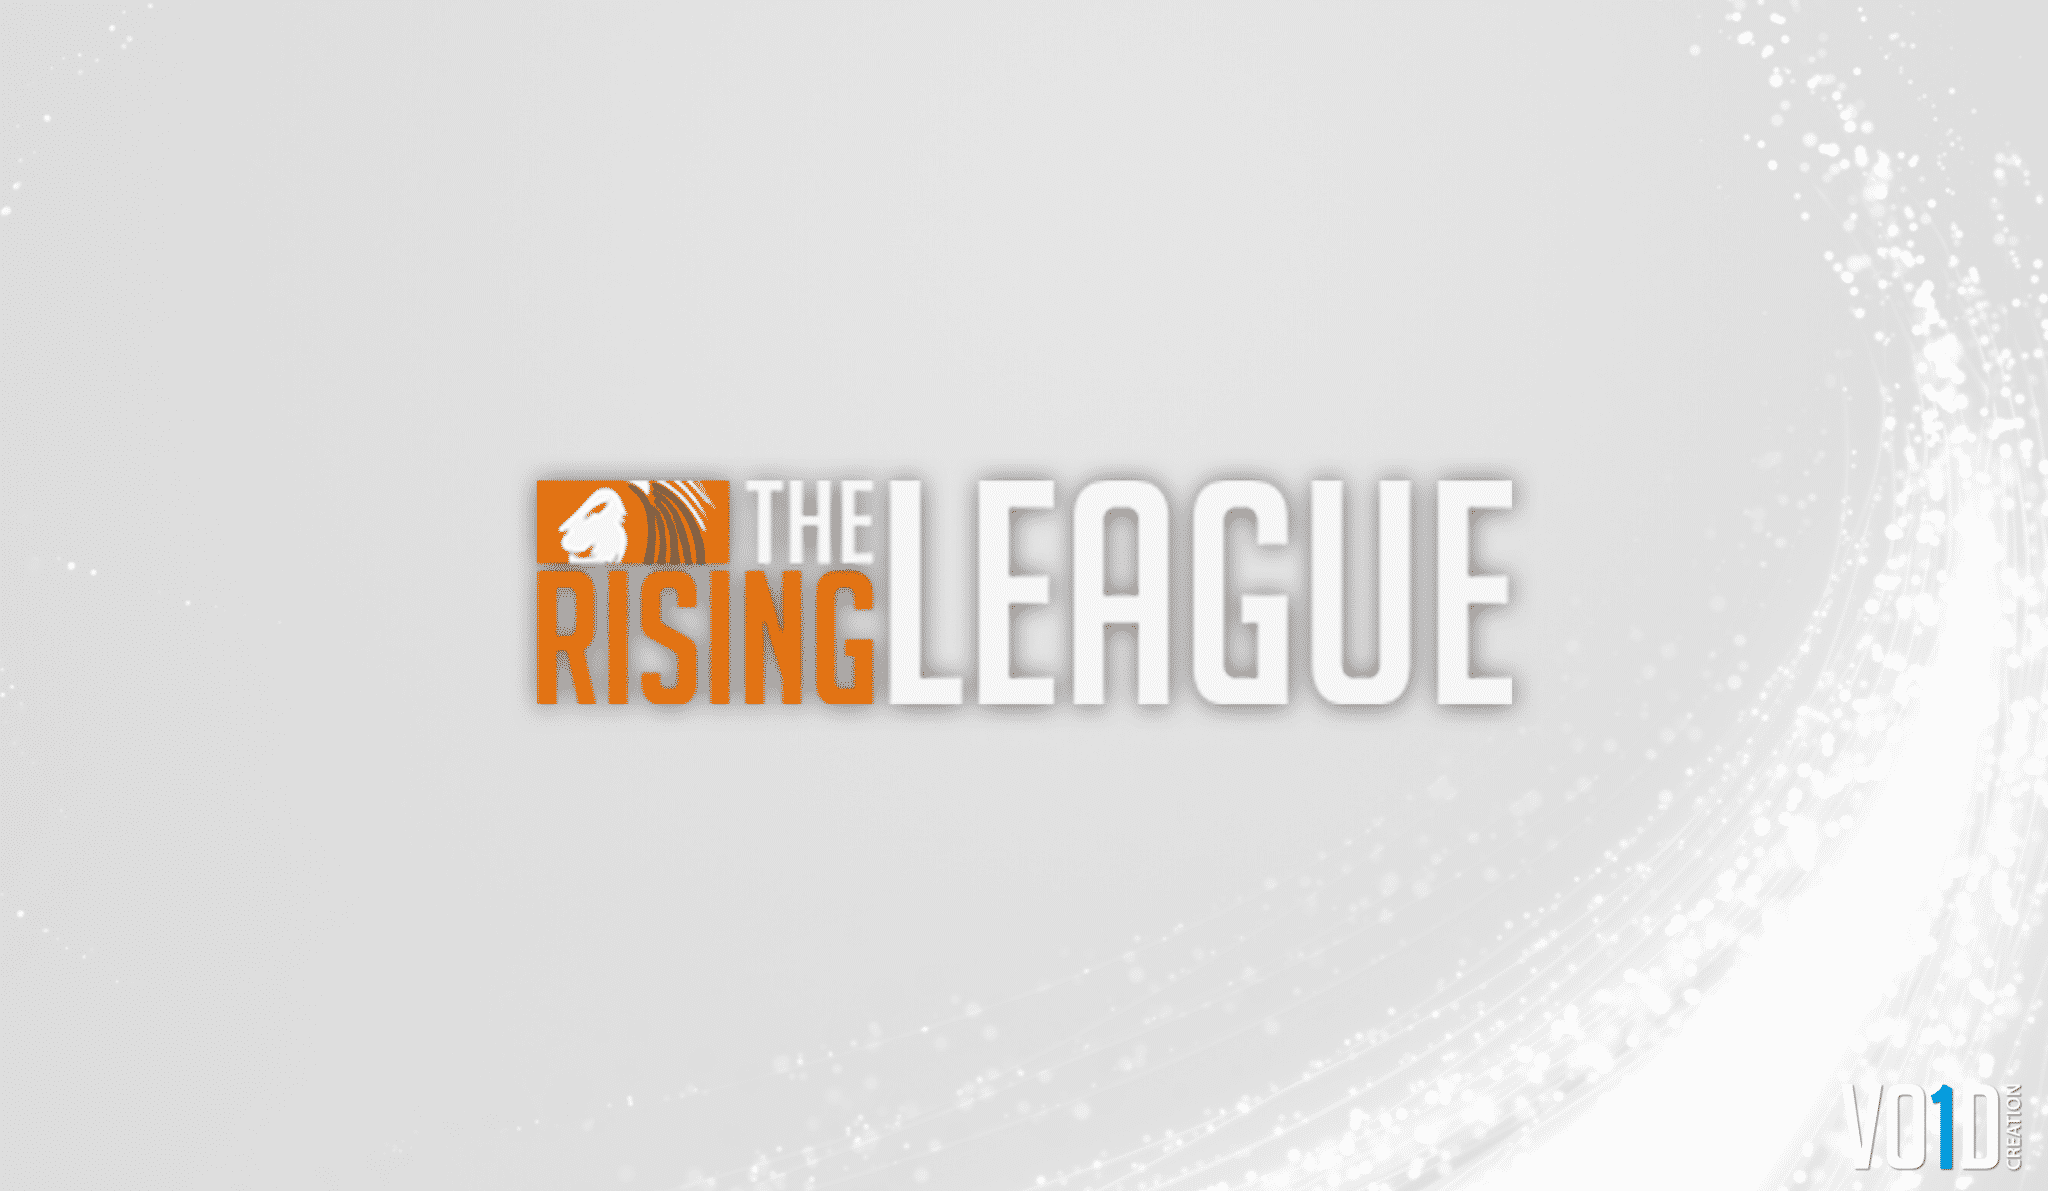 The Rising League